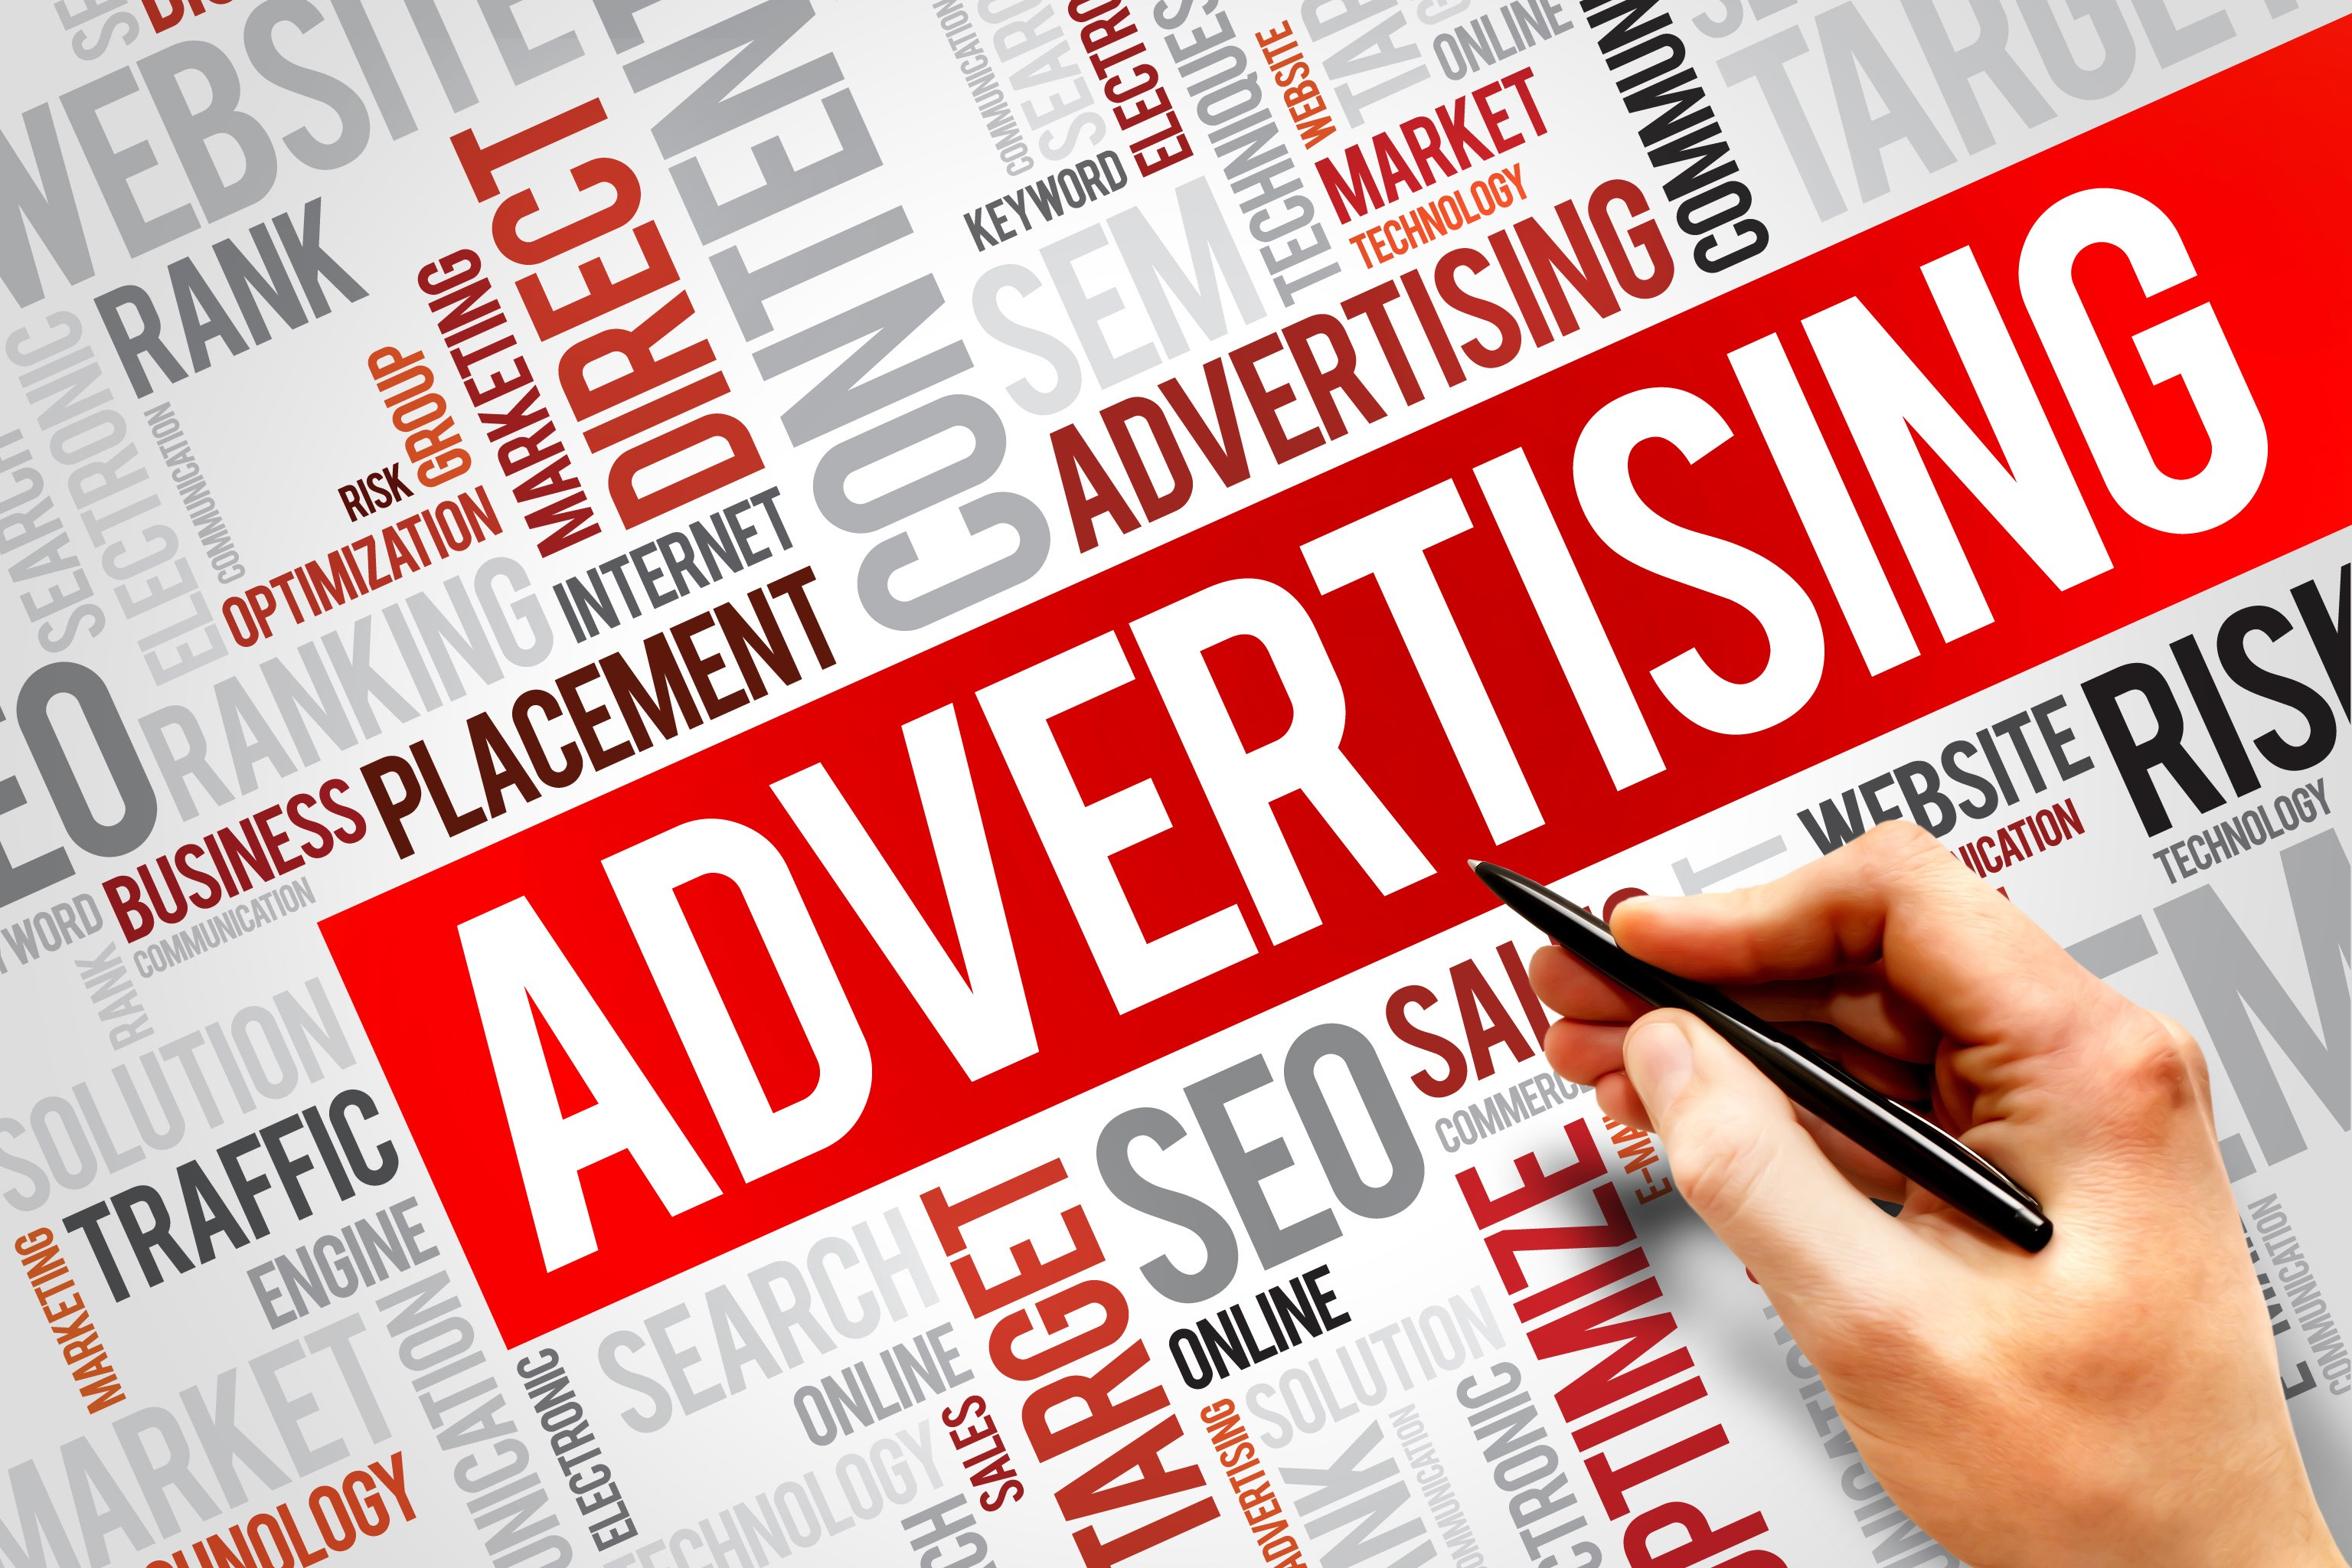 Advertise your Brand/Business to over 10000 Potential Customers